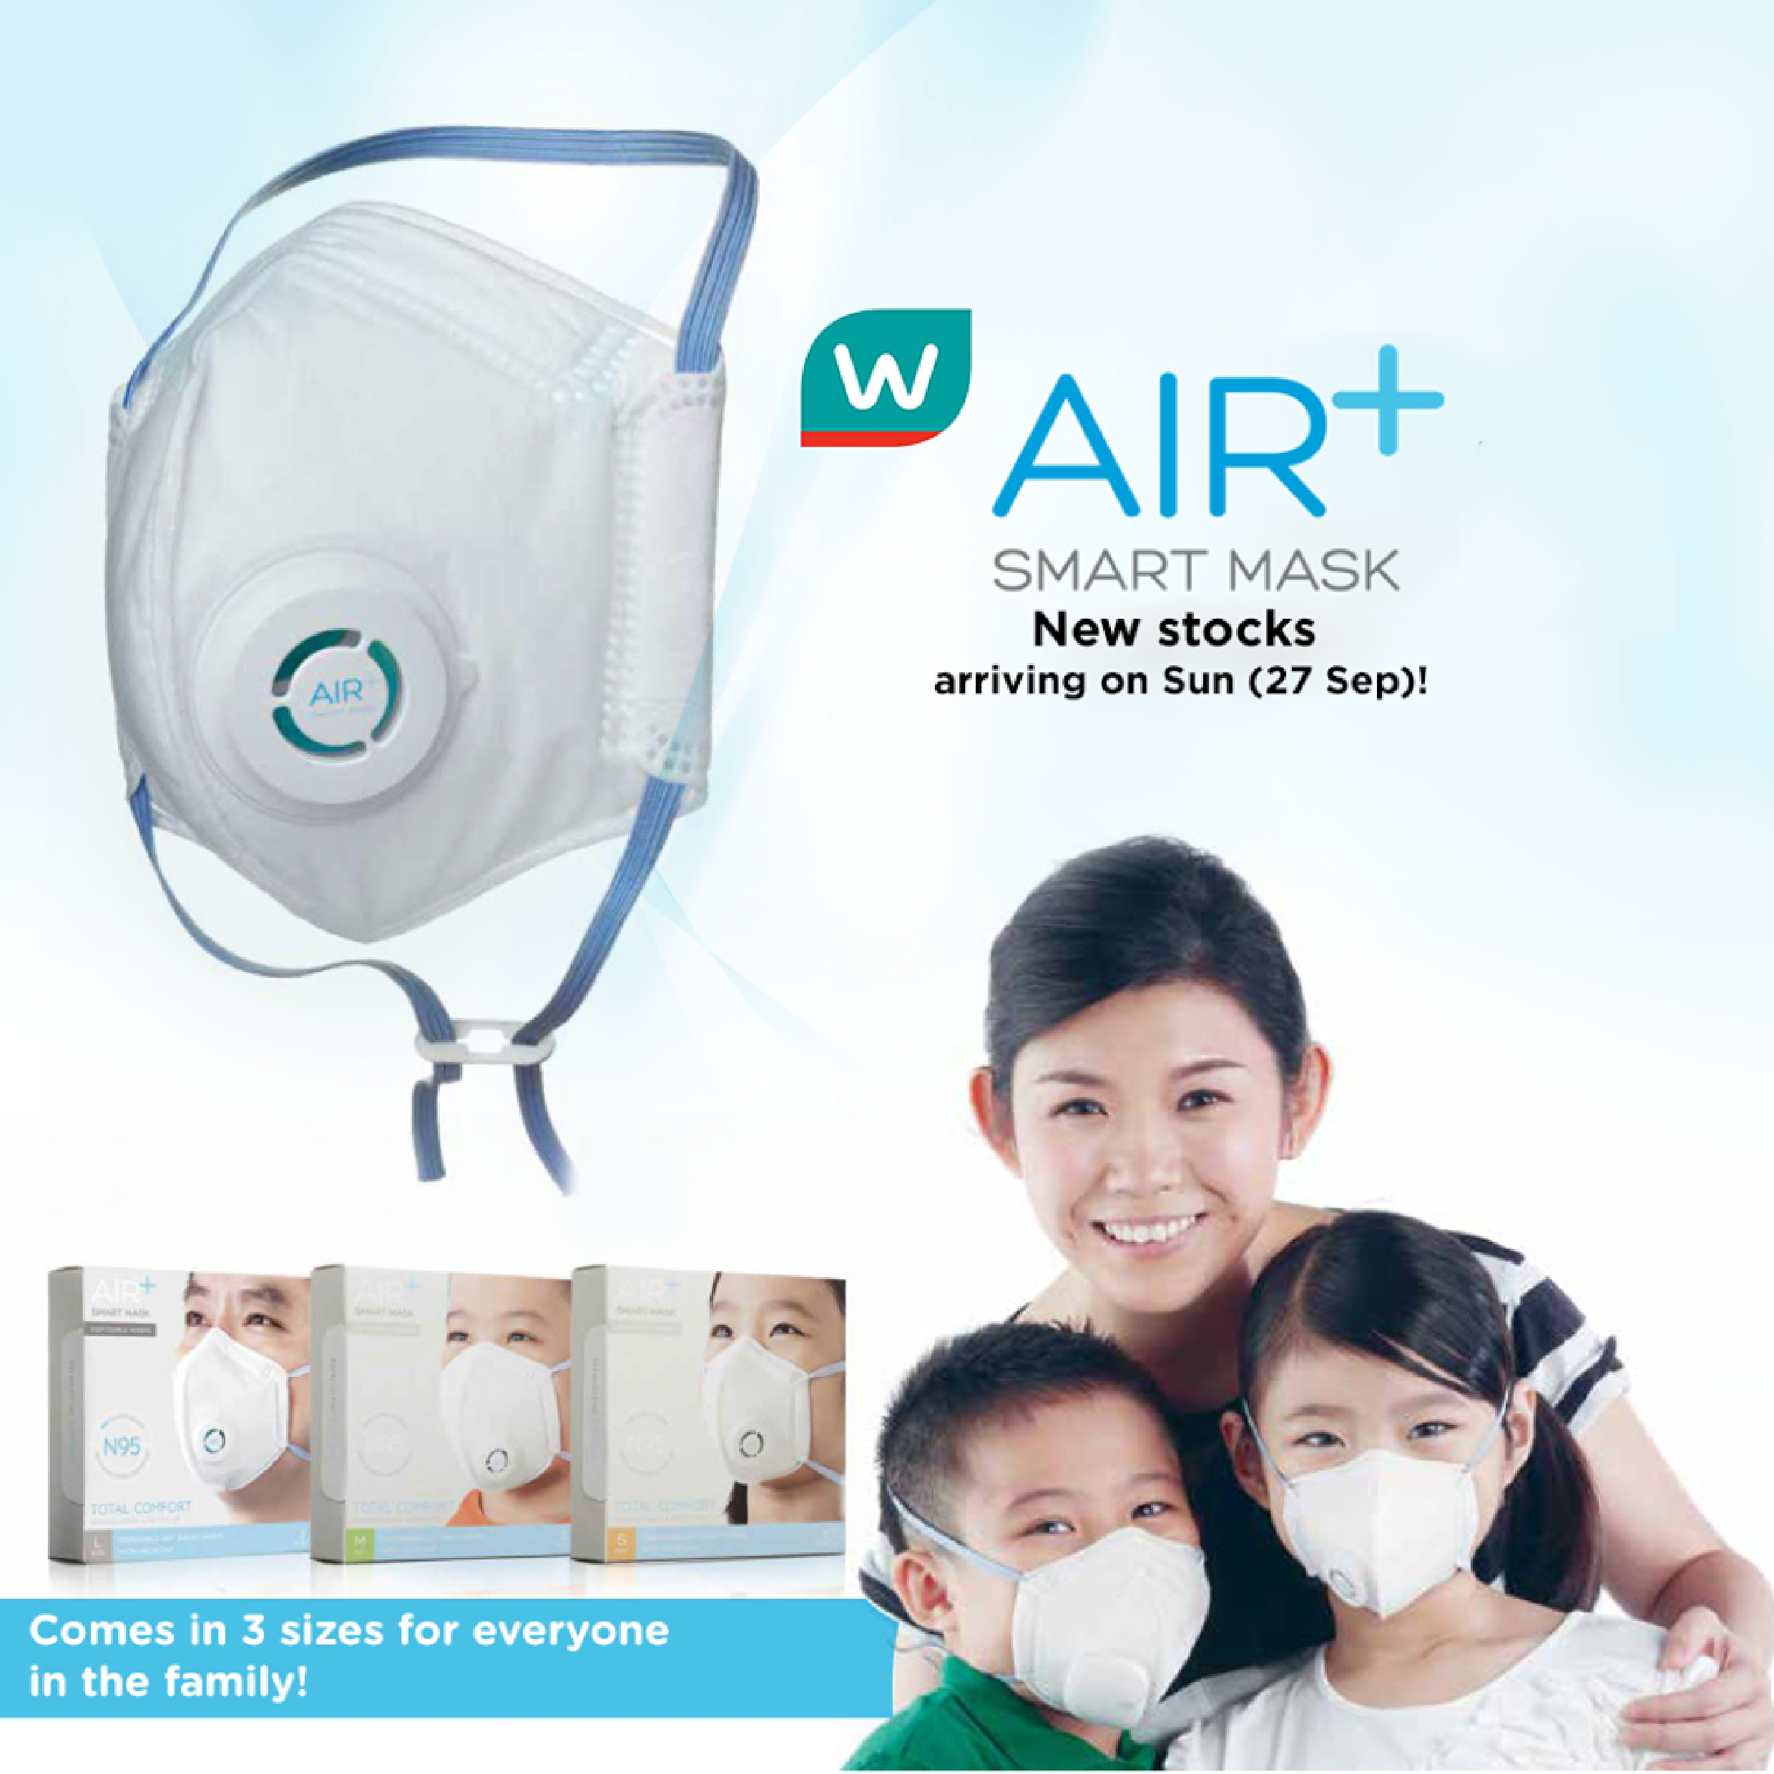 Your From Get Calaméo Mask At Air - 27 Smart Watsons September